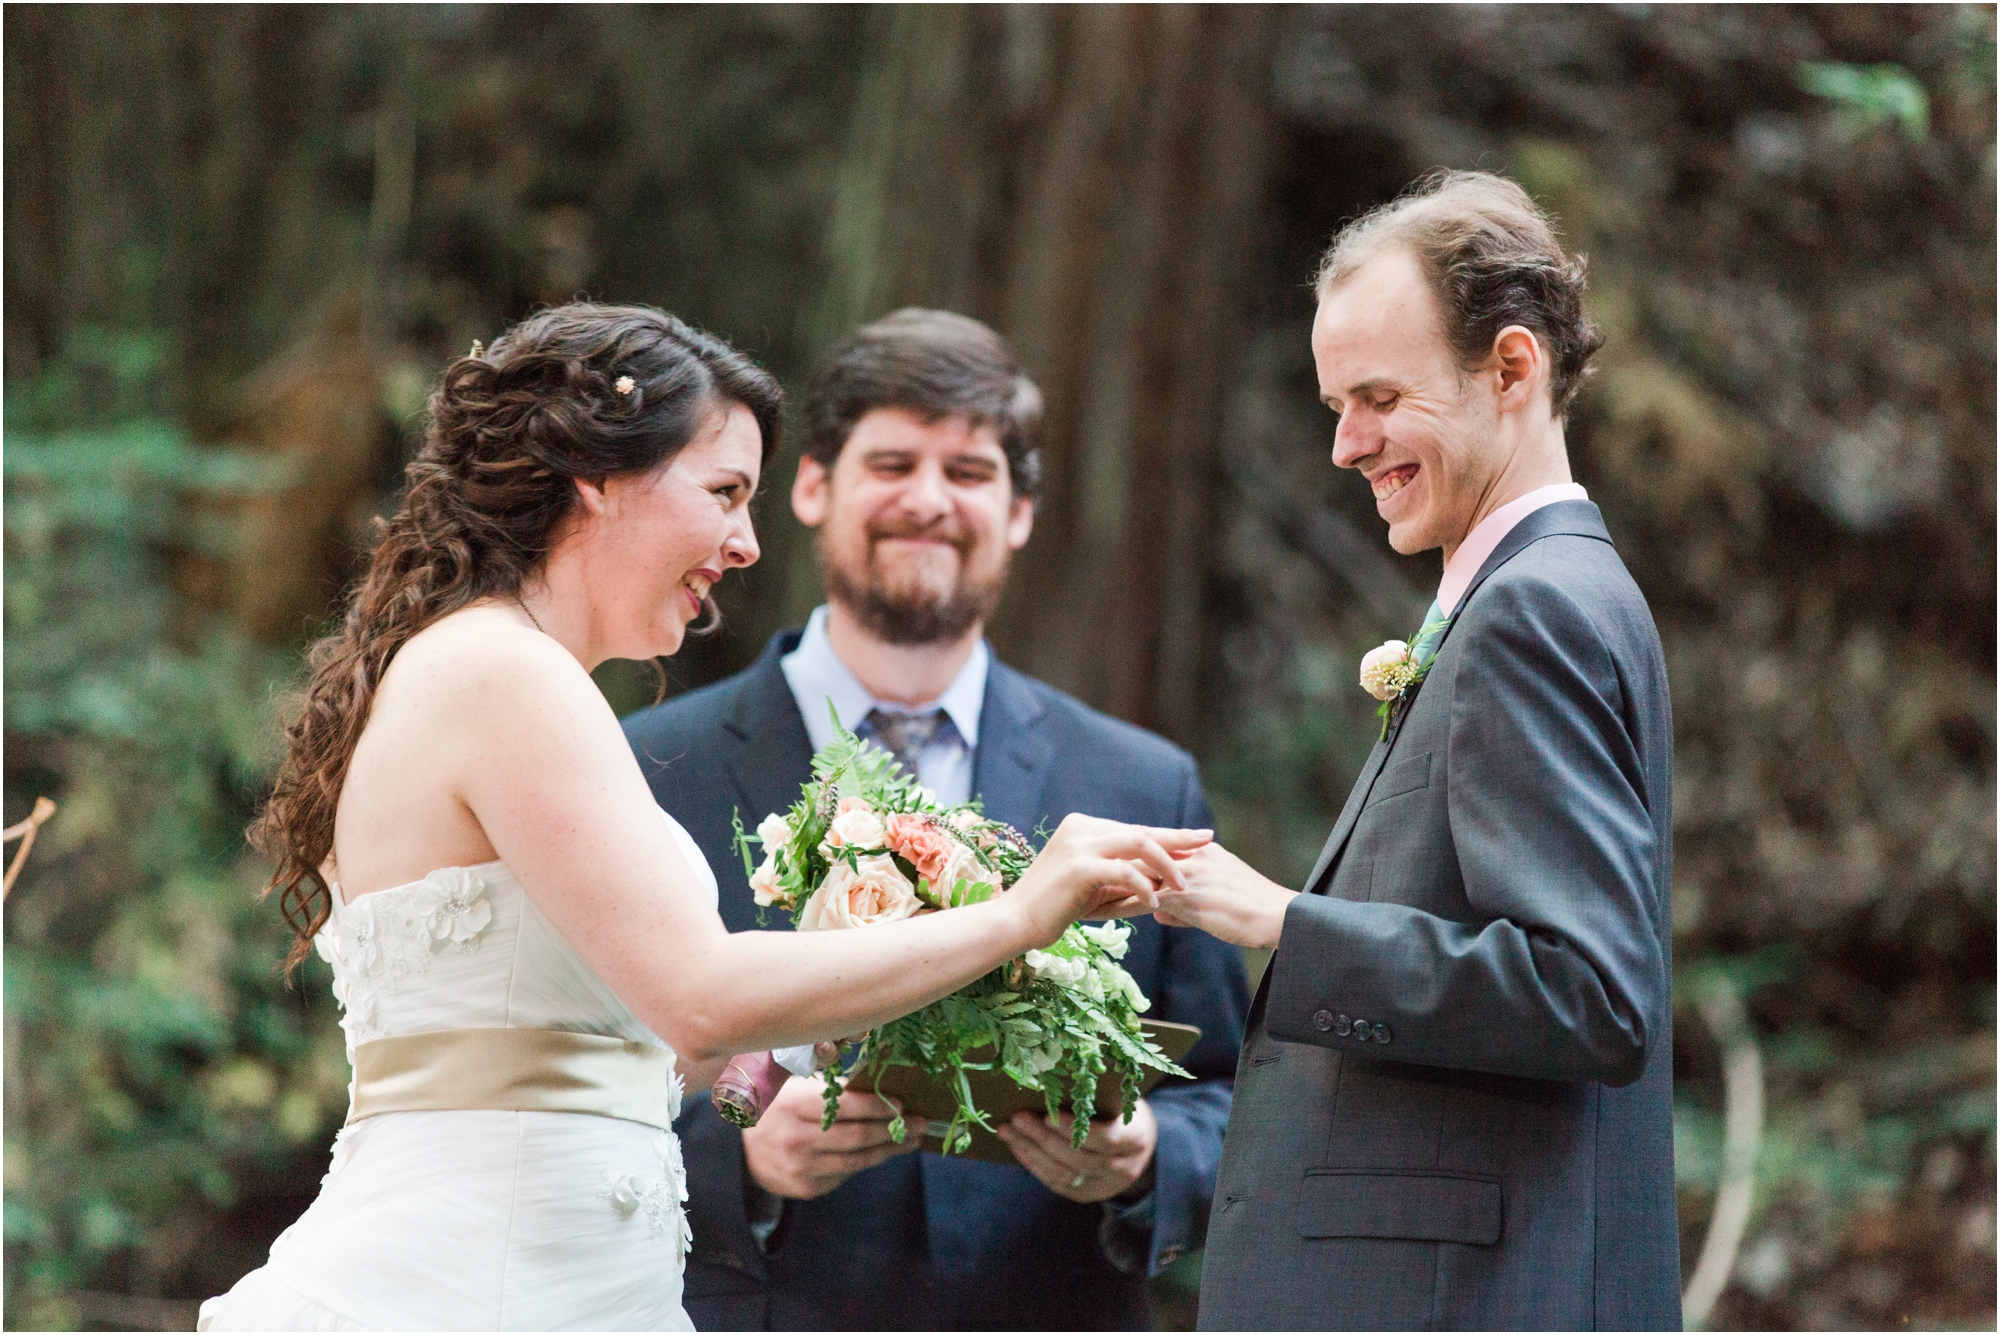 Saratoga Springs wedding pictures by Briana Calderon Photography_1890.jpg